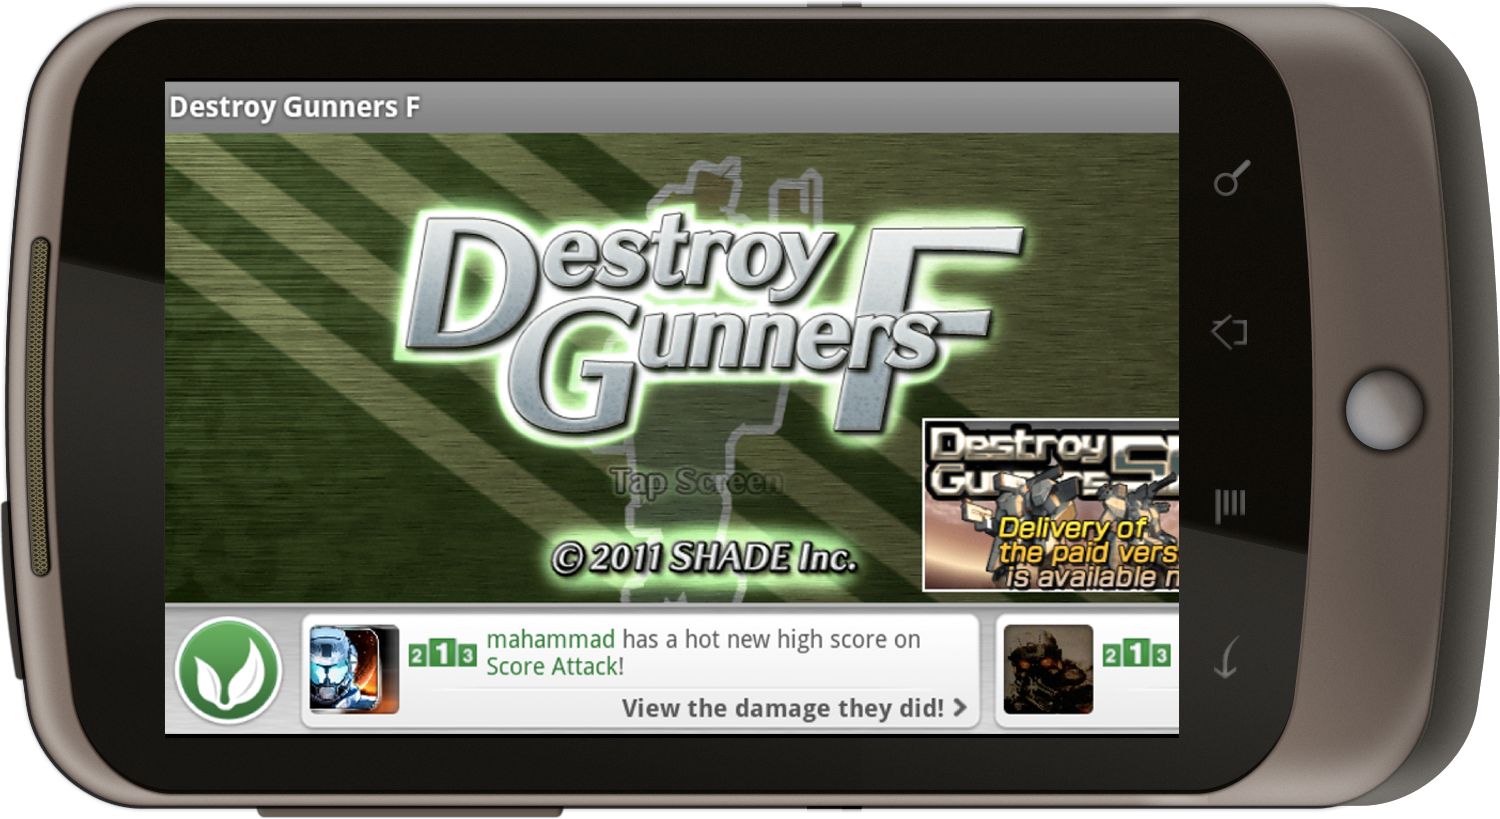 OpenFeint Announces GameFeed to Make Android Gaming More Social